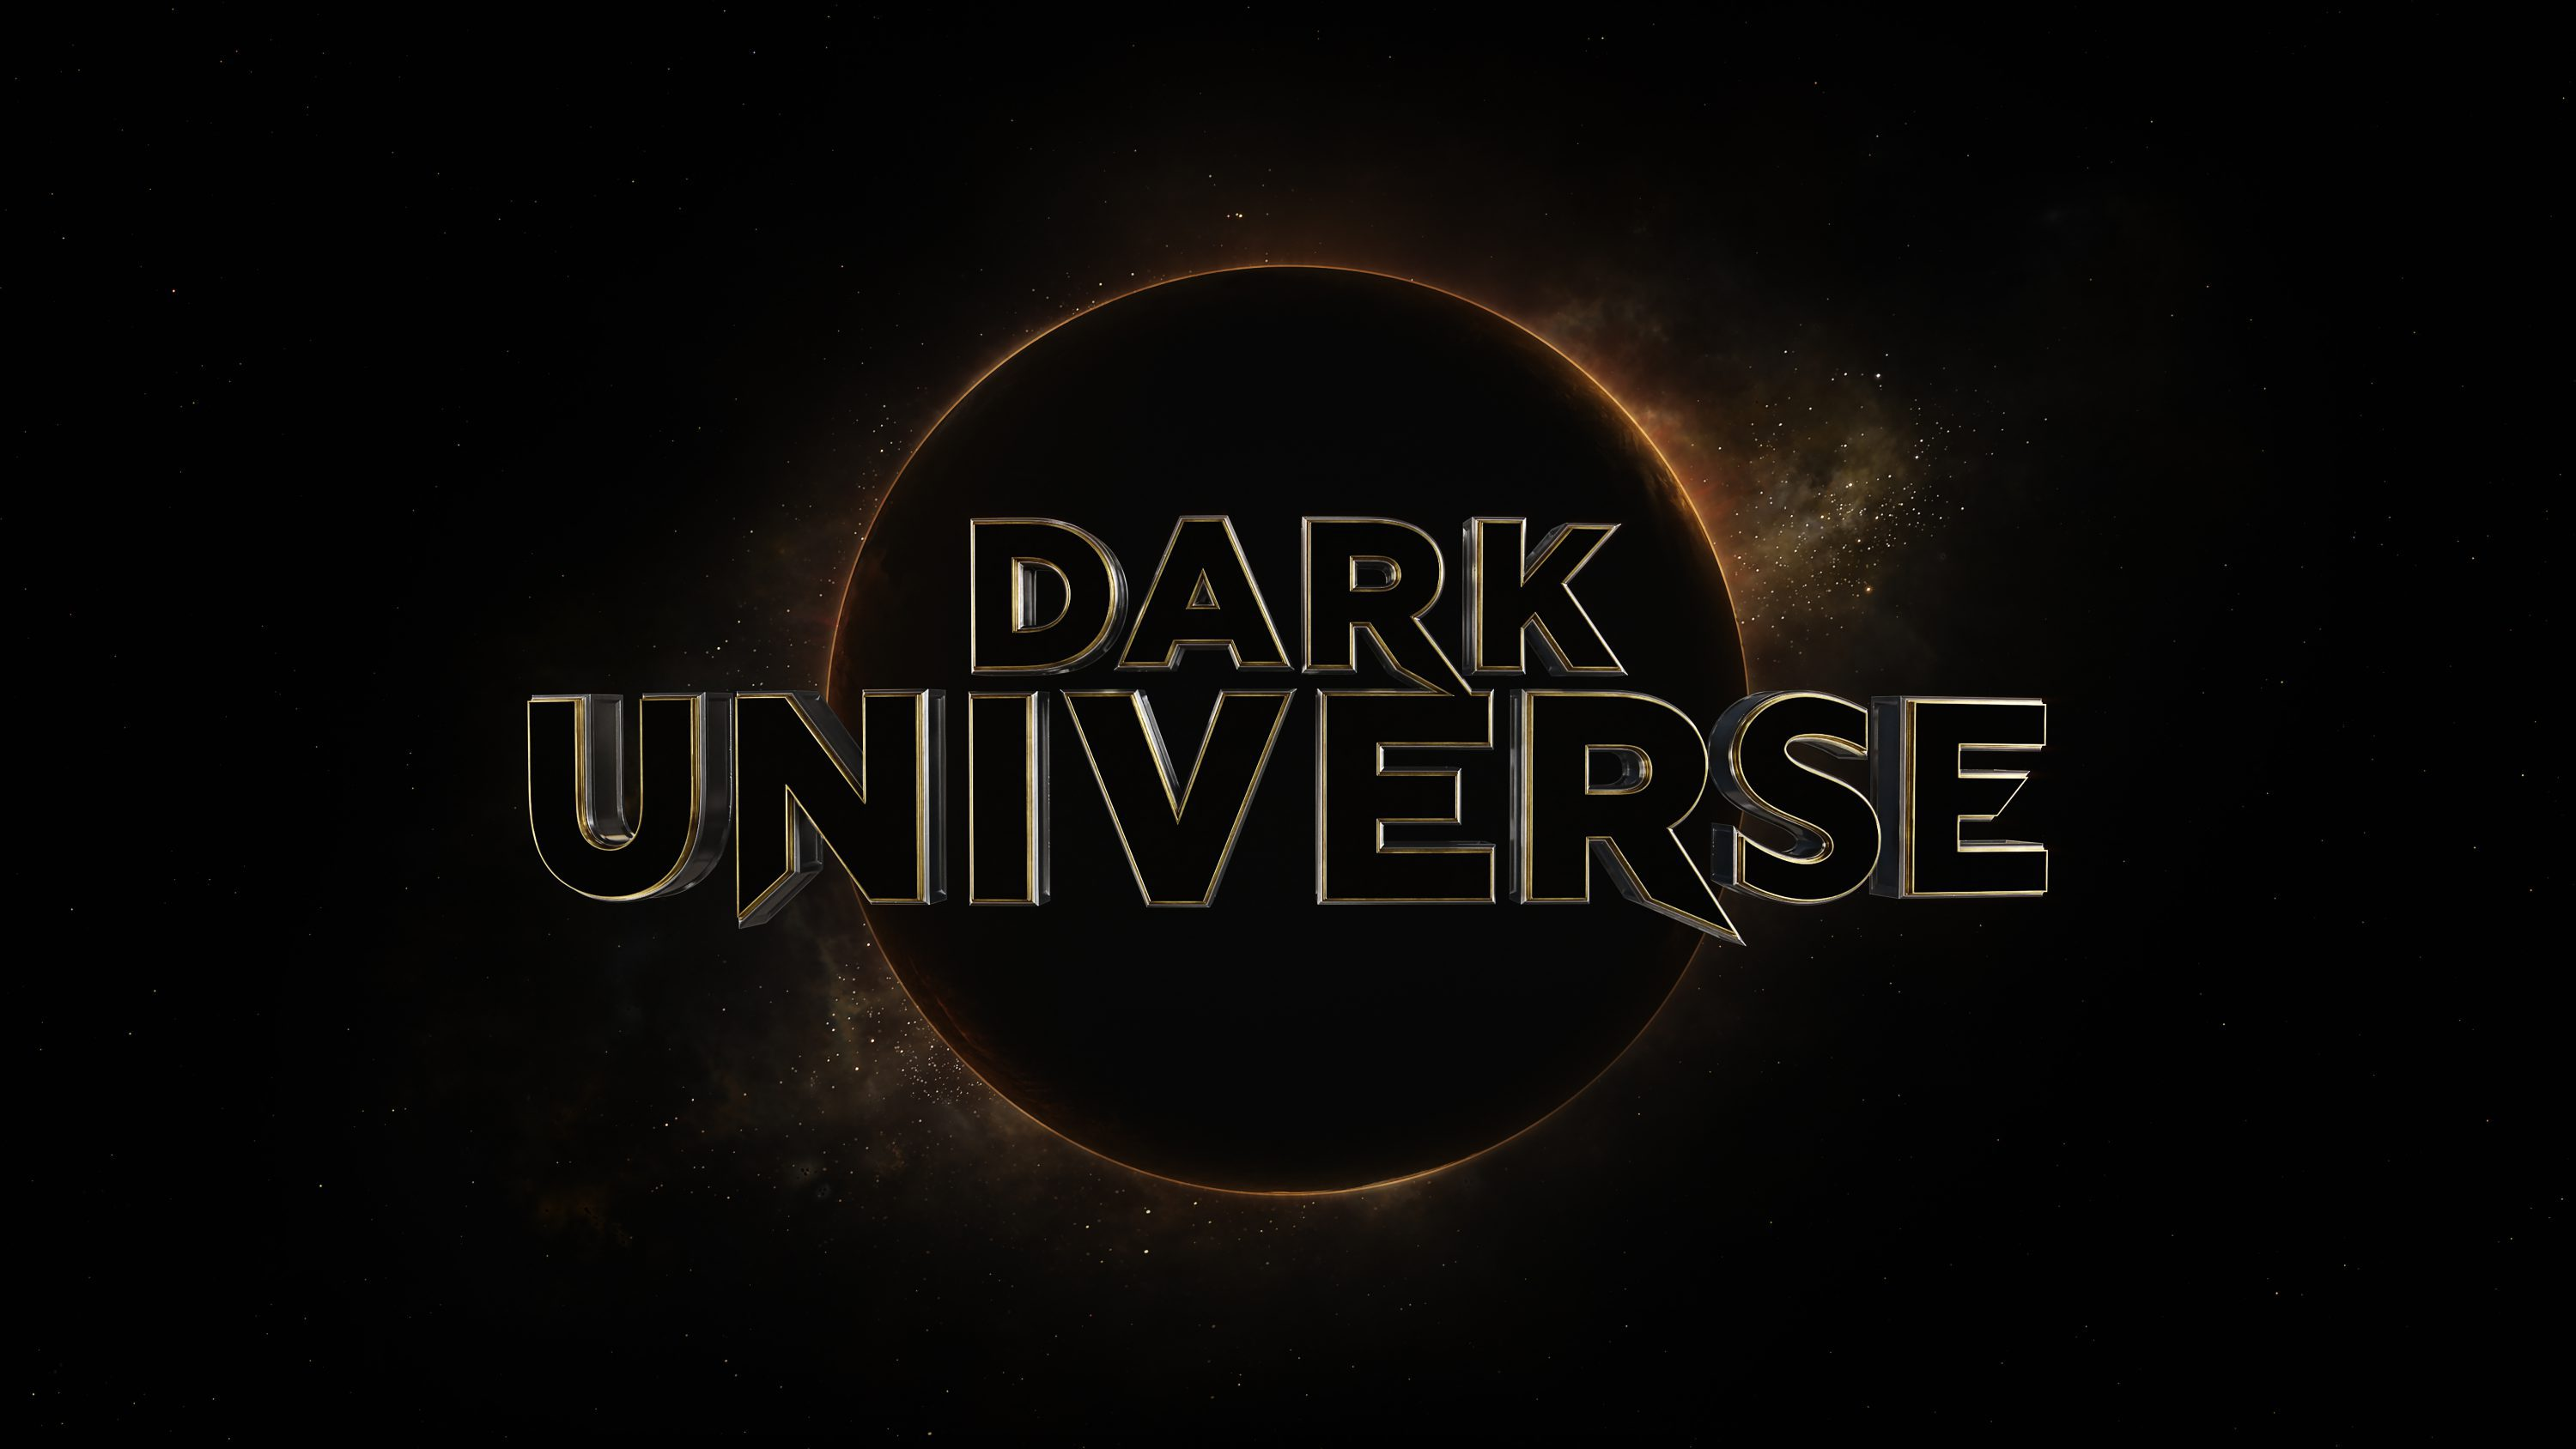 dark universe e1496975037758 The Mummy, Universal, and the Risk of Cinematic Universes